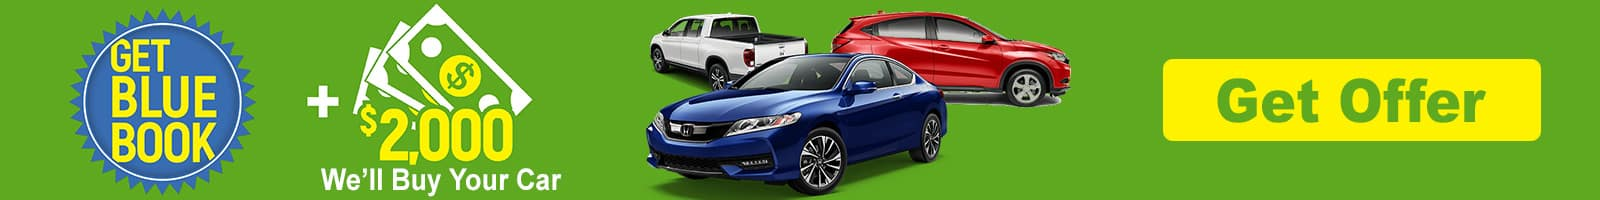 Get Kelly Blue Book plus $2,000 more for your car